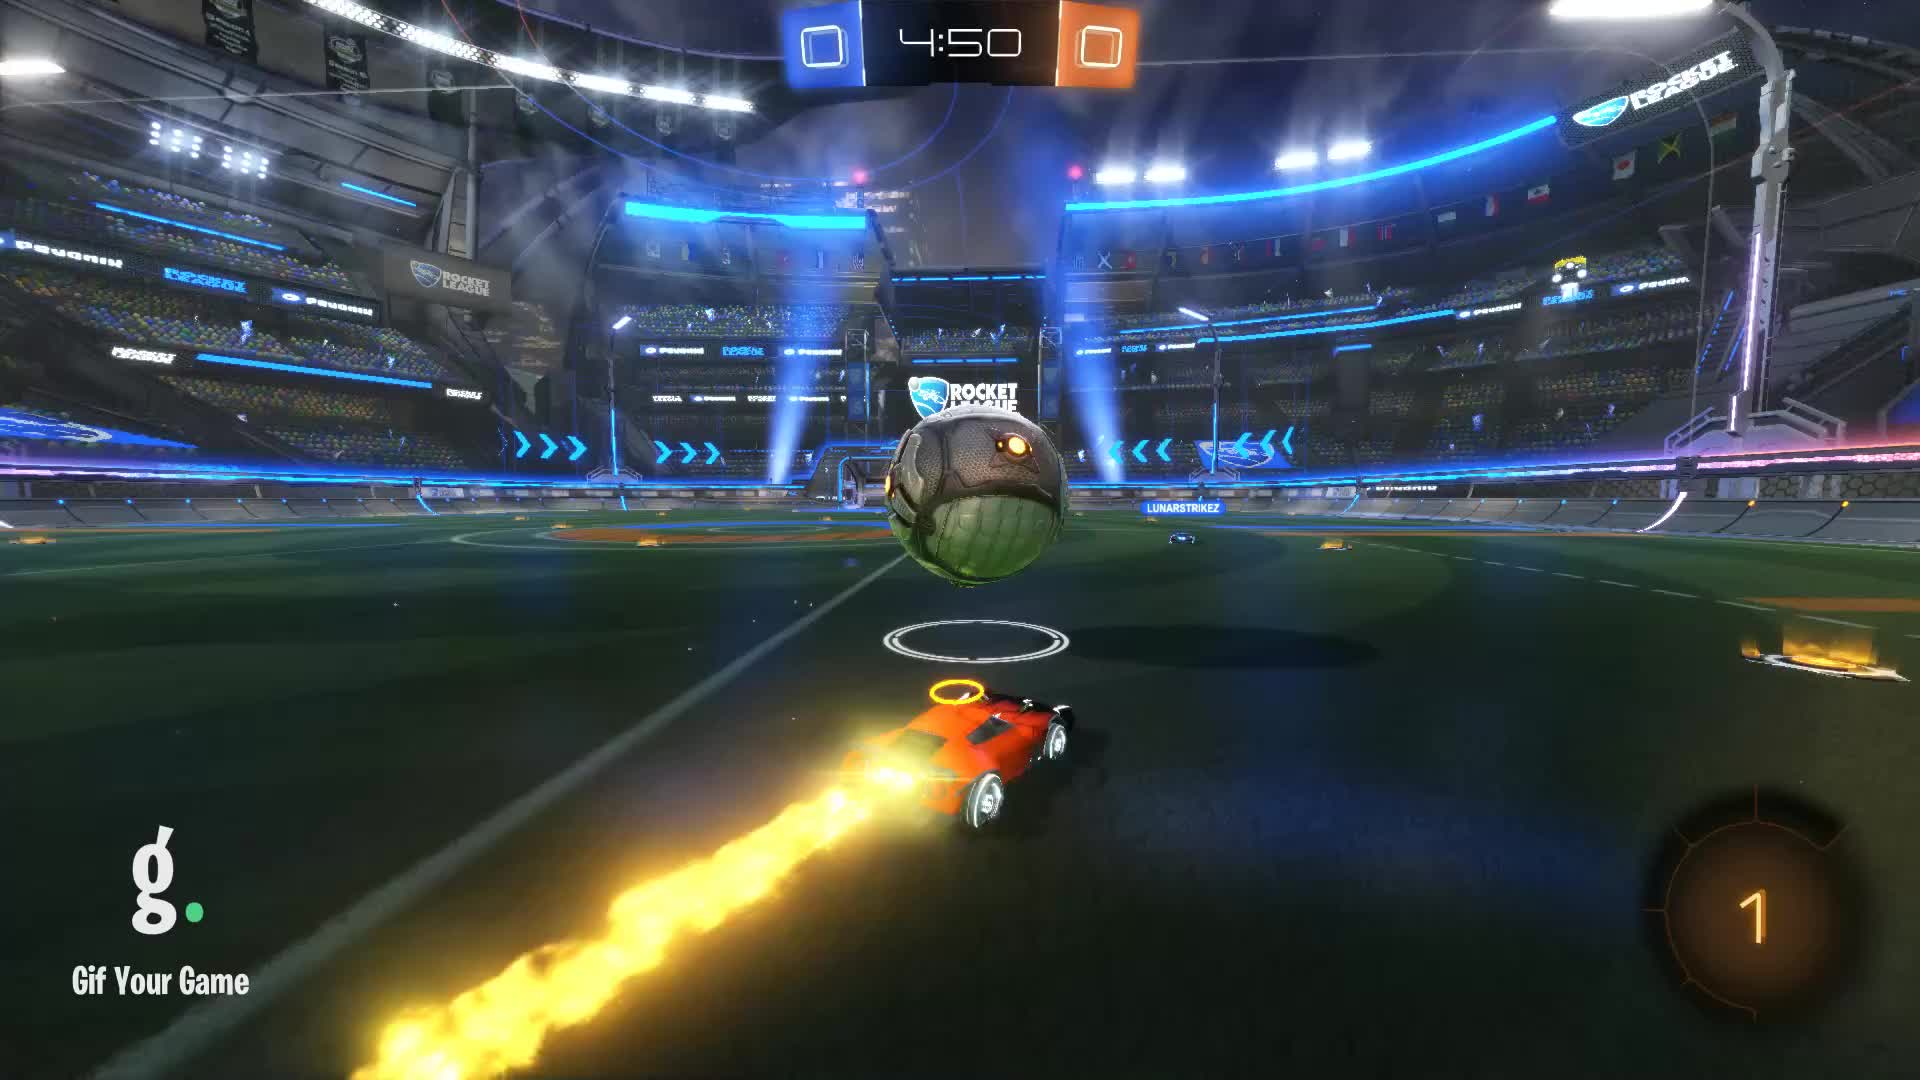 Fletcher5051, Gif Your Game, GifYourGame, Goal, Rocket League, RocketLeague, Goal 1: Fletcher5051 GIFs